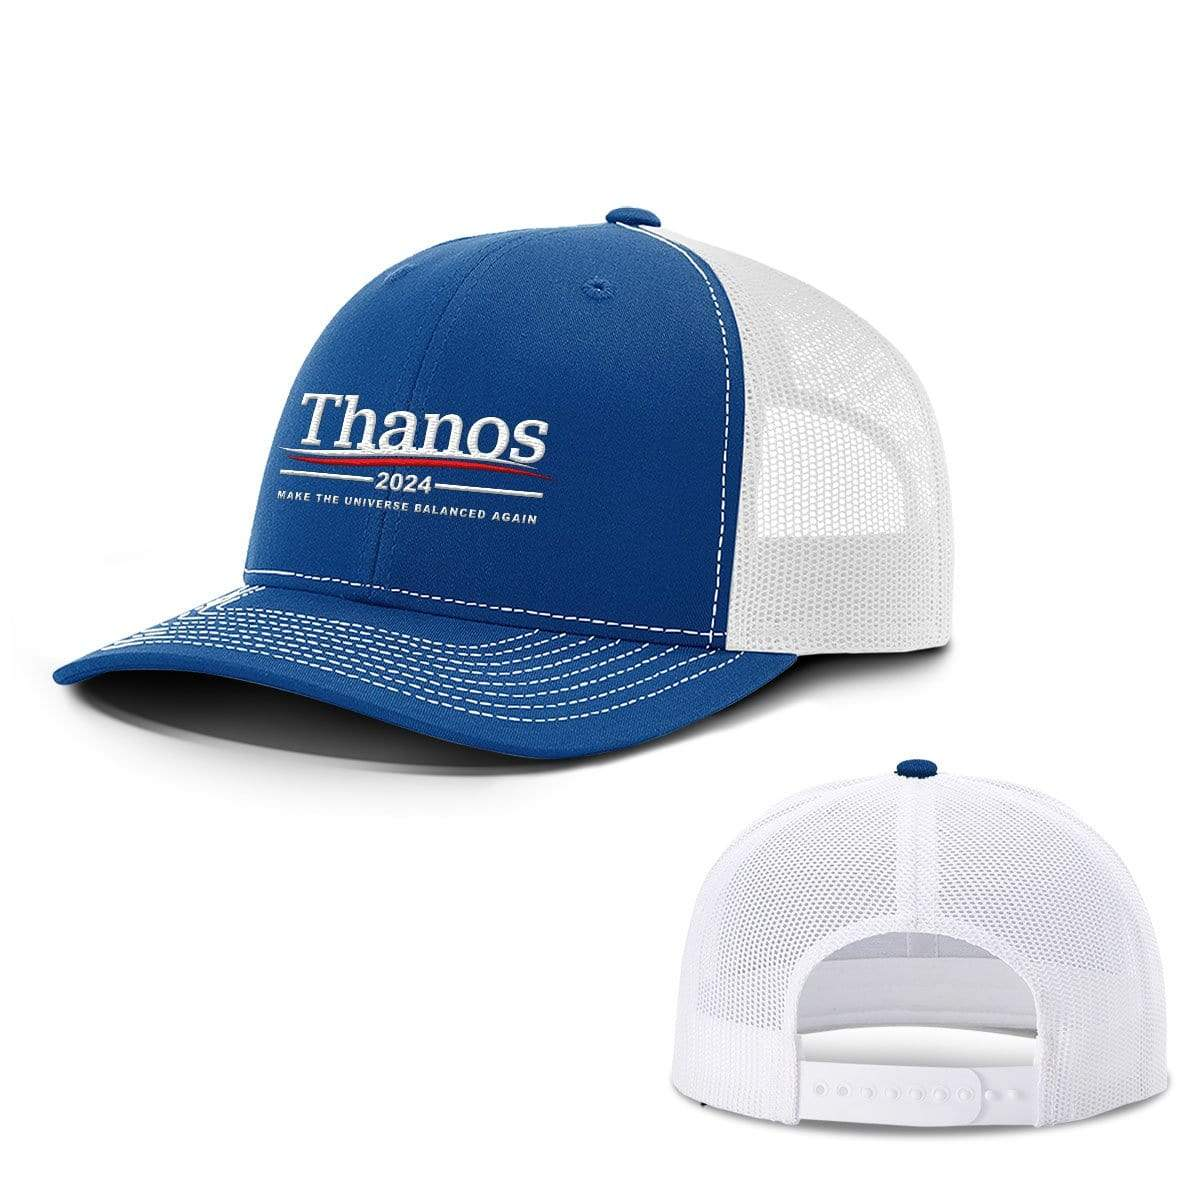 SunFrog-Busted Hats Thanos 2024 Hats